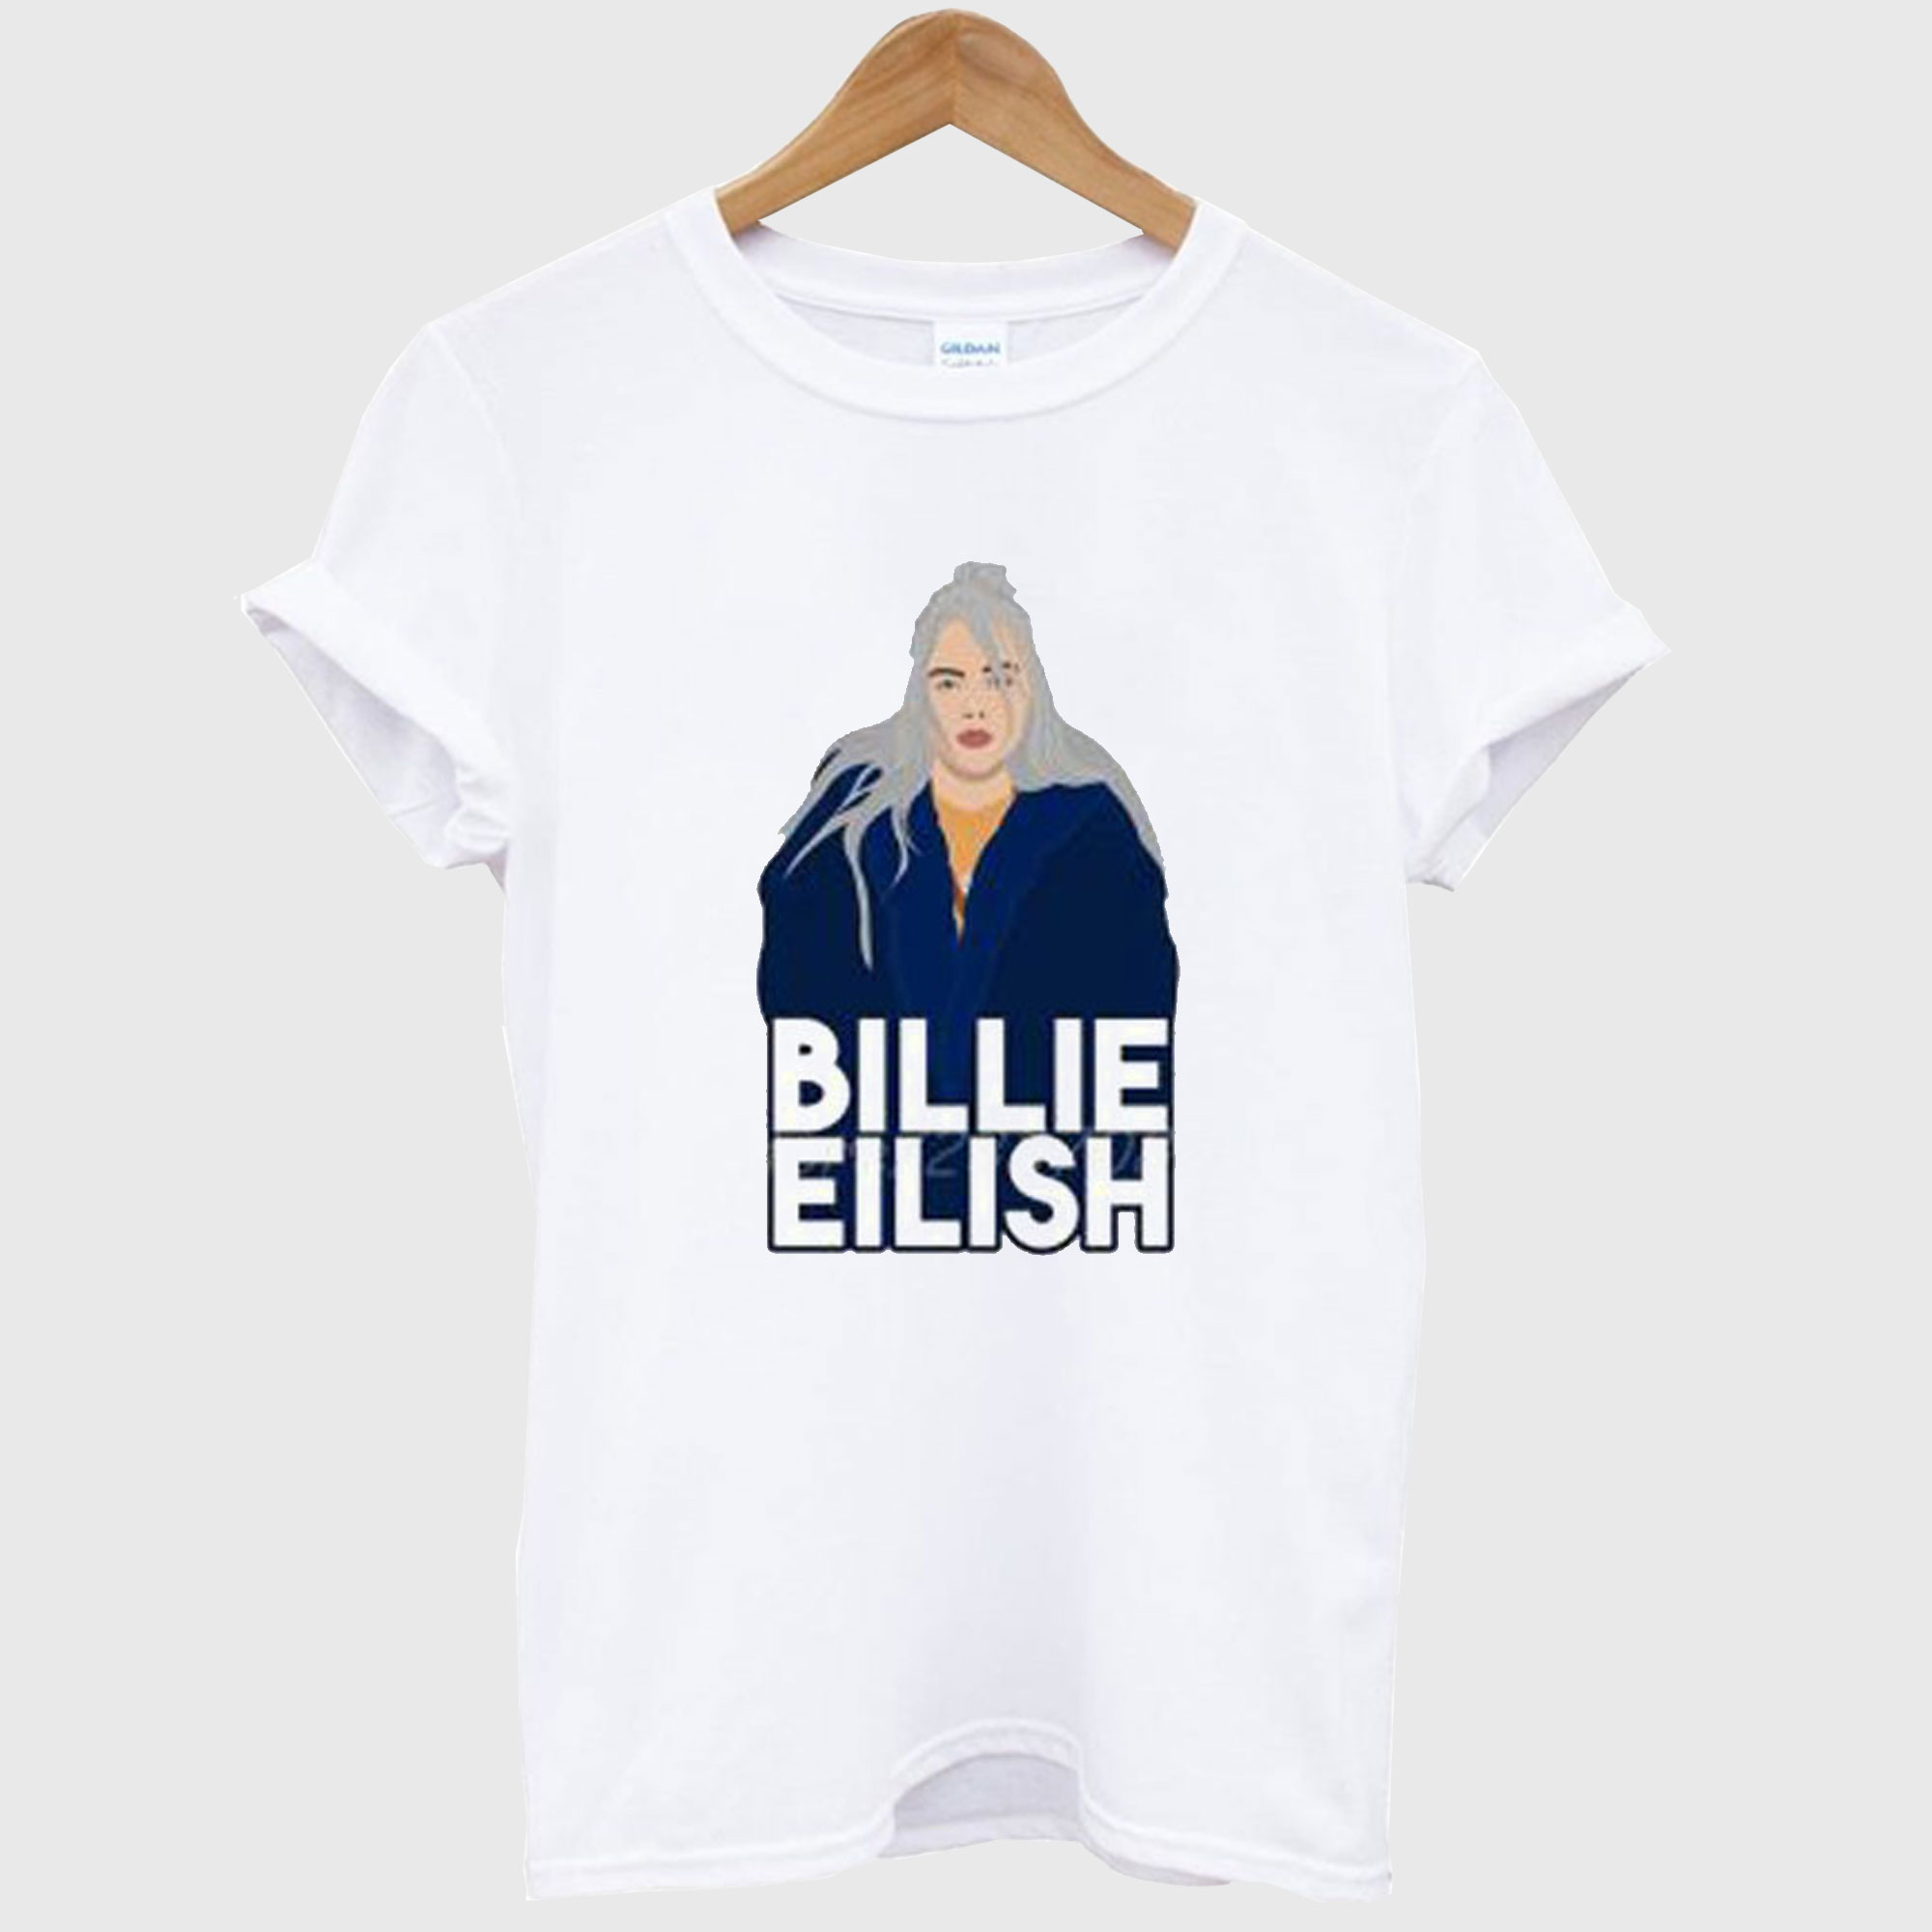 Compre Billie Eilish T shirt